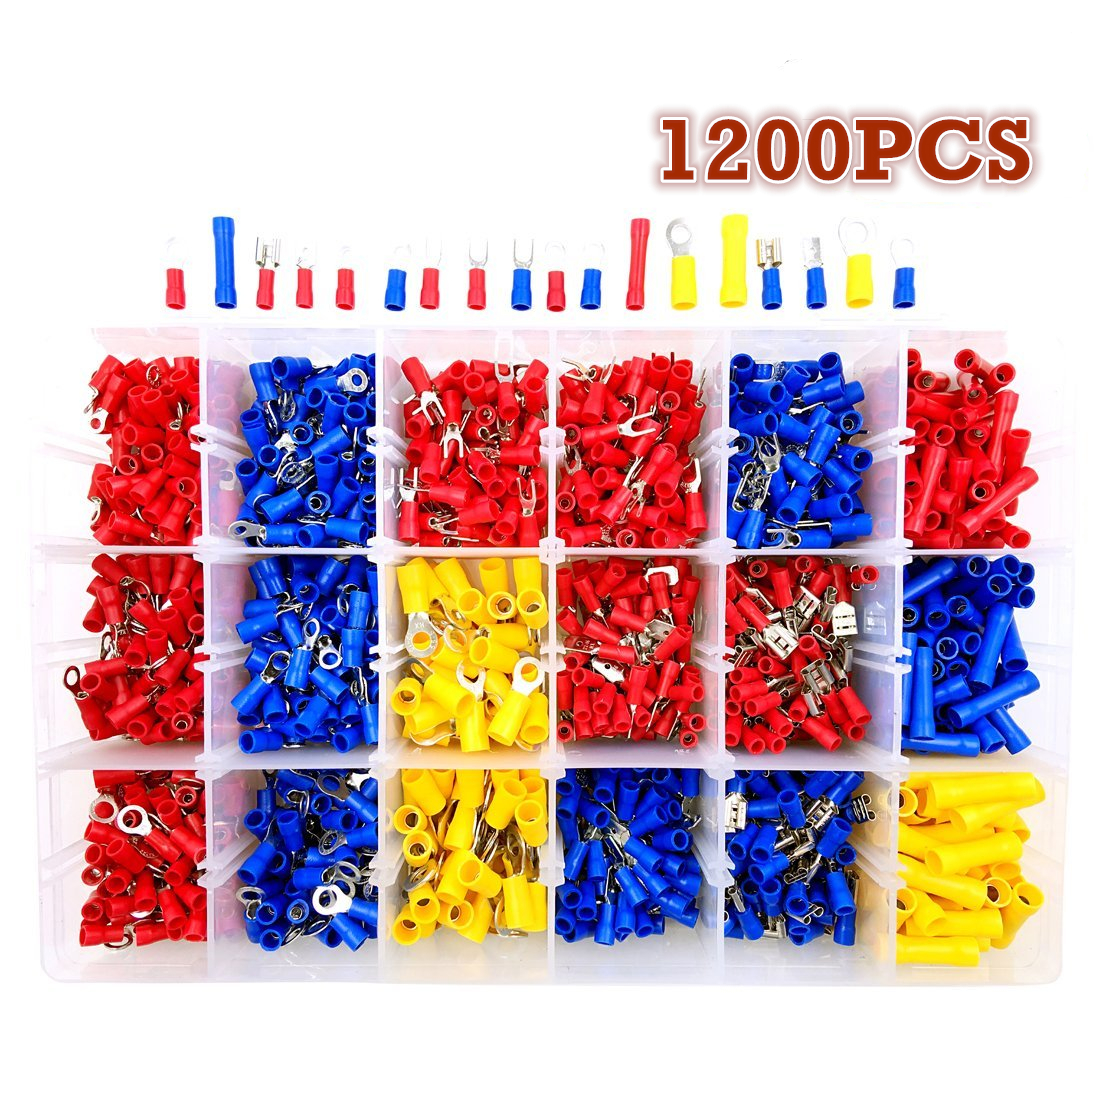 1200Pcs/Set Assorted Electrical Wire Crimp Terminals Red Blue Yellow Insulated Spade Cable Connectors 22-10AWG 200 pcs blue insulated crimp receptacle terminals cable lug frd2 195 awg 16 14